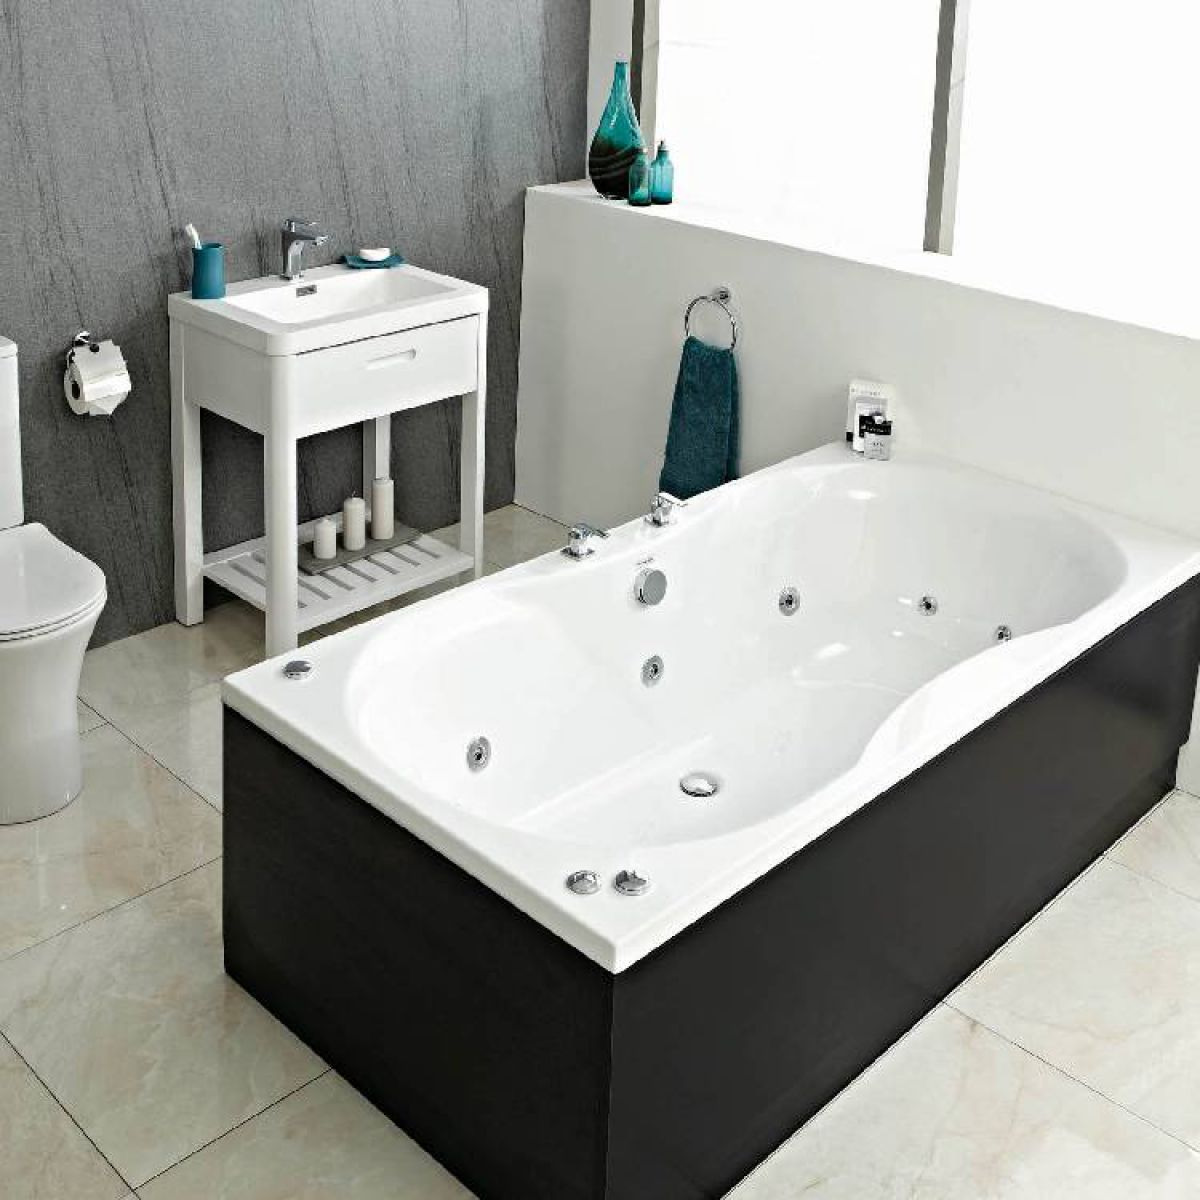 Delicieux Get The Perfect Whirlpool Bath For Your Home